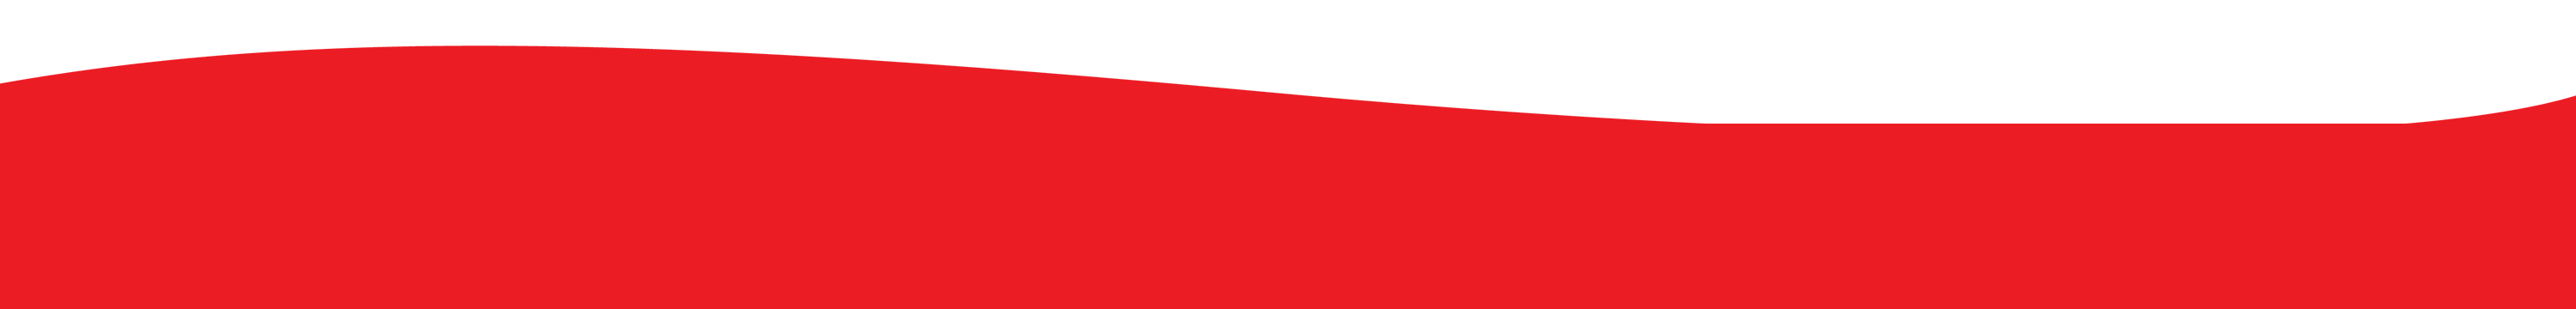 waves-red-1.png